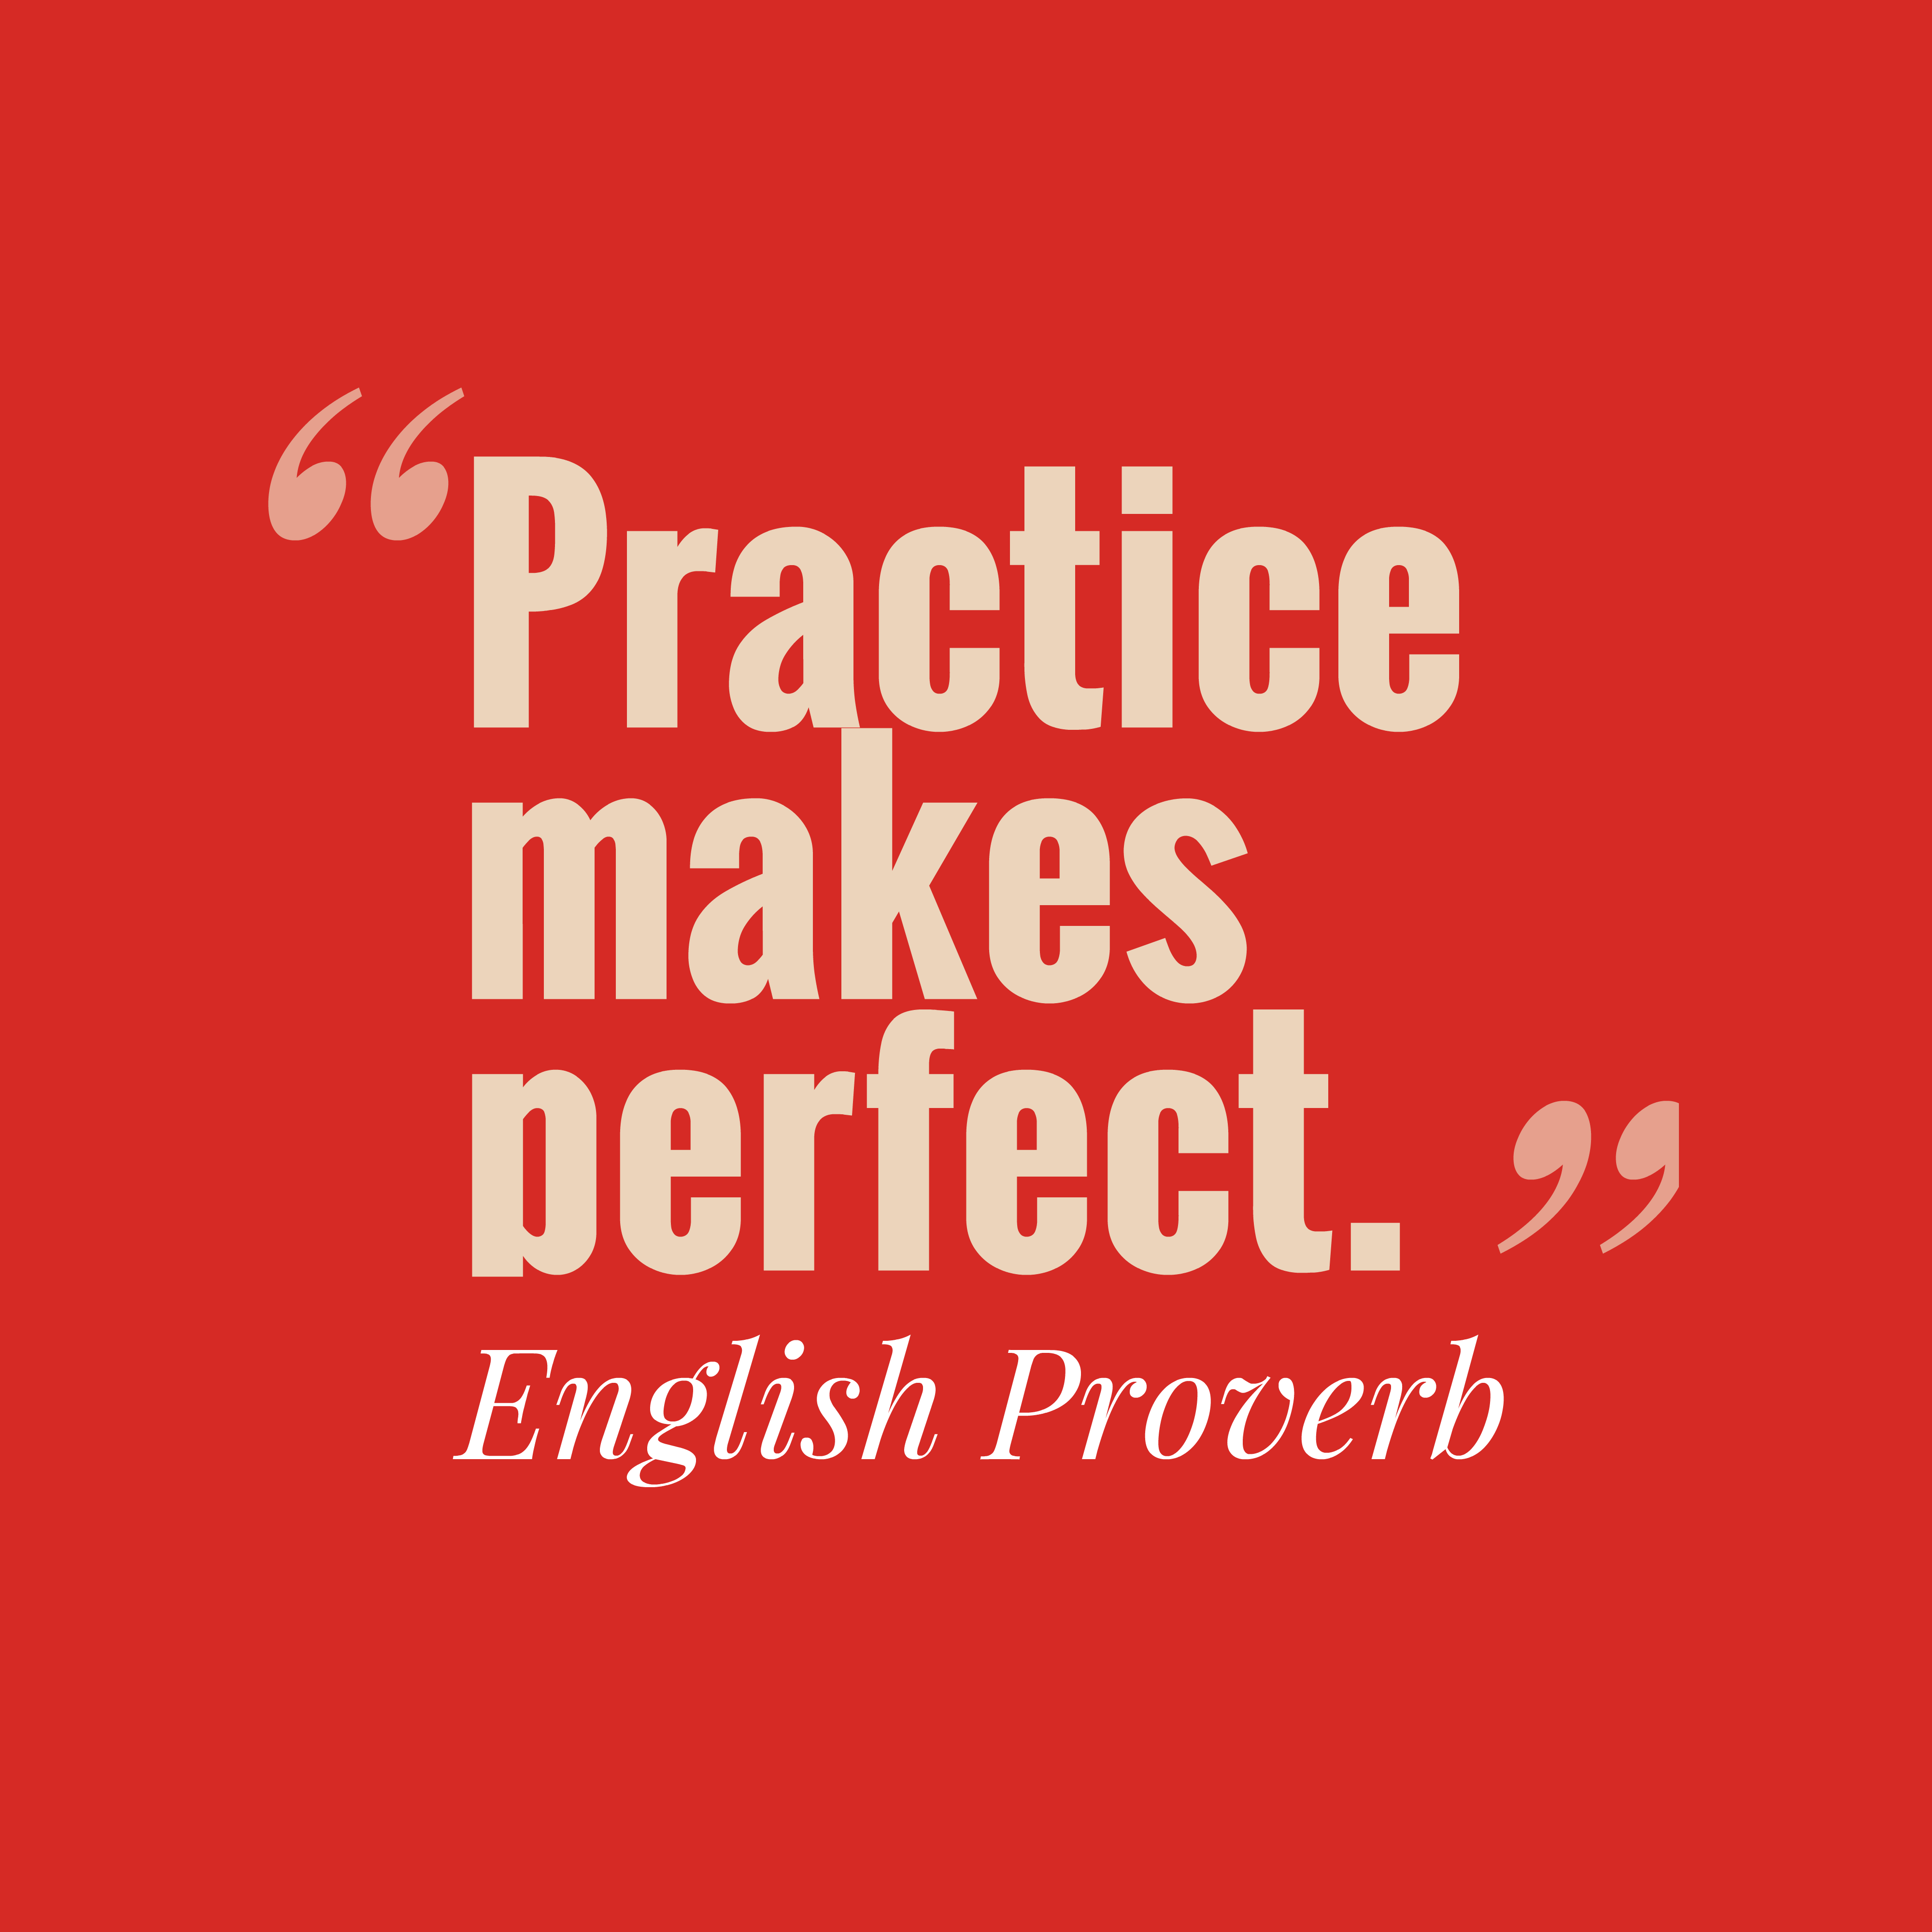 English proverbs (alphabetically by proverb)